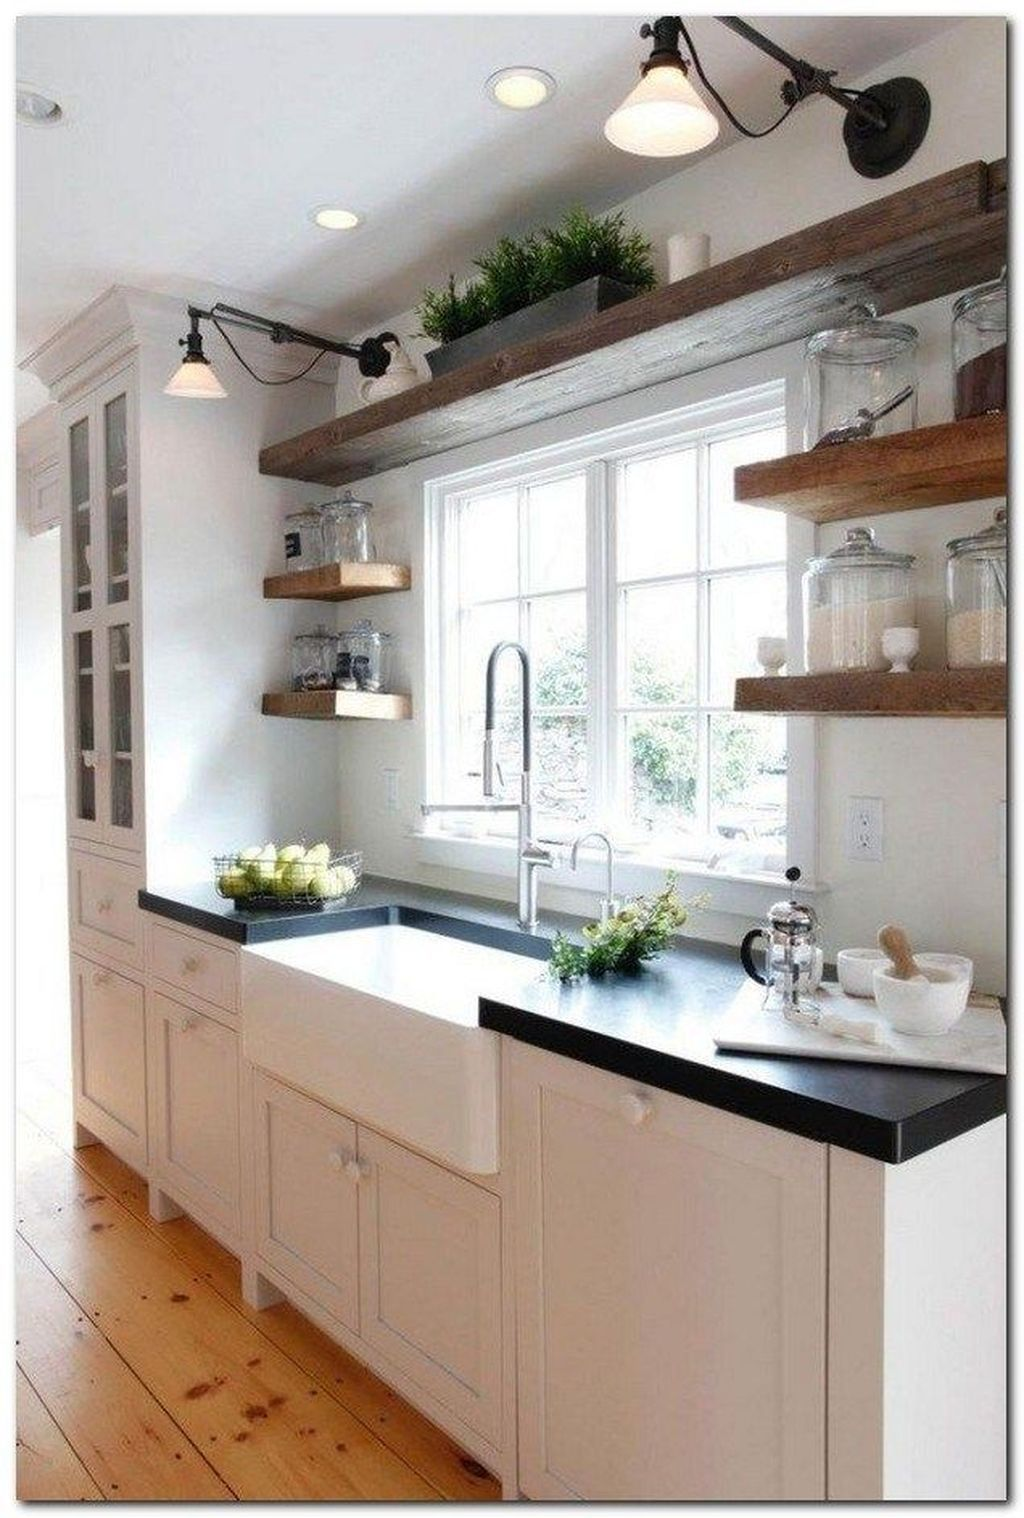 Stylish 42 Adorable Small Kitchen Remodel Design Ideas On ...